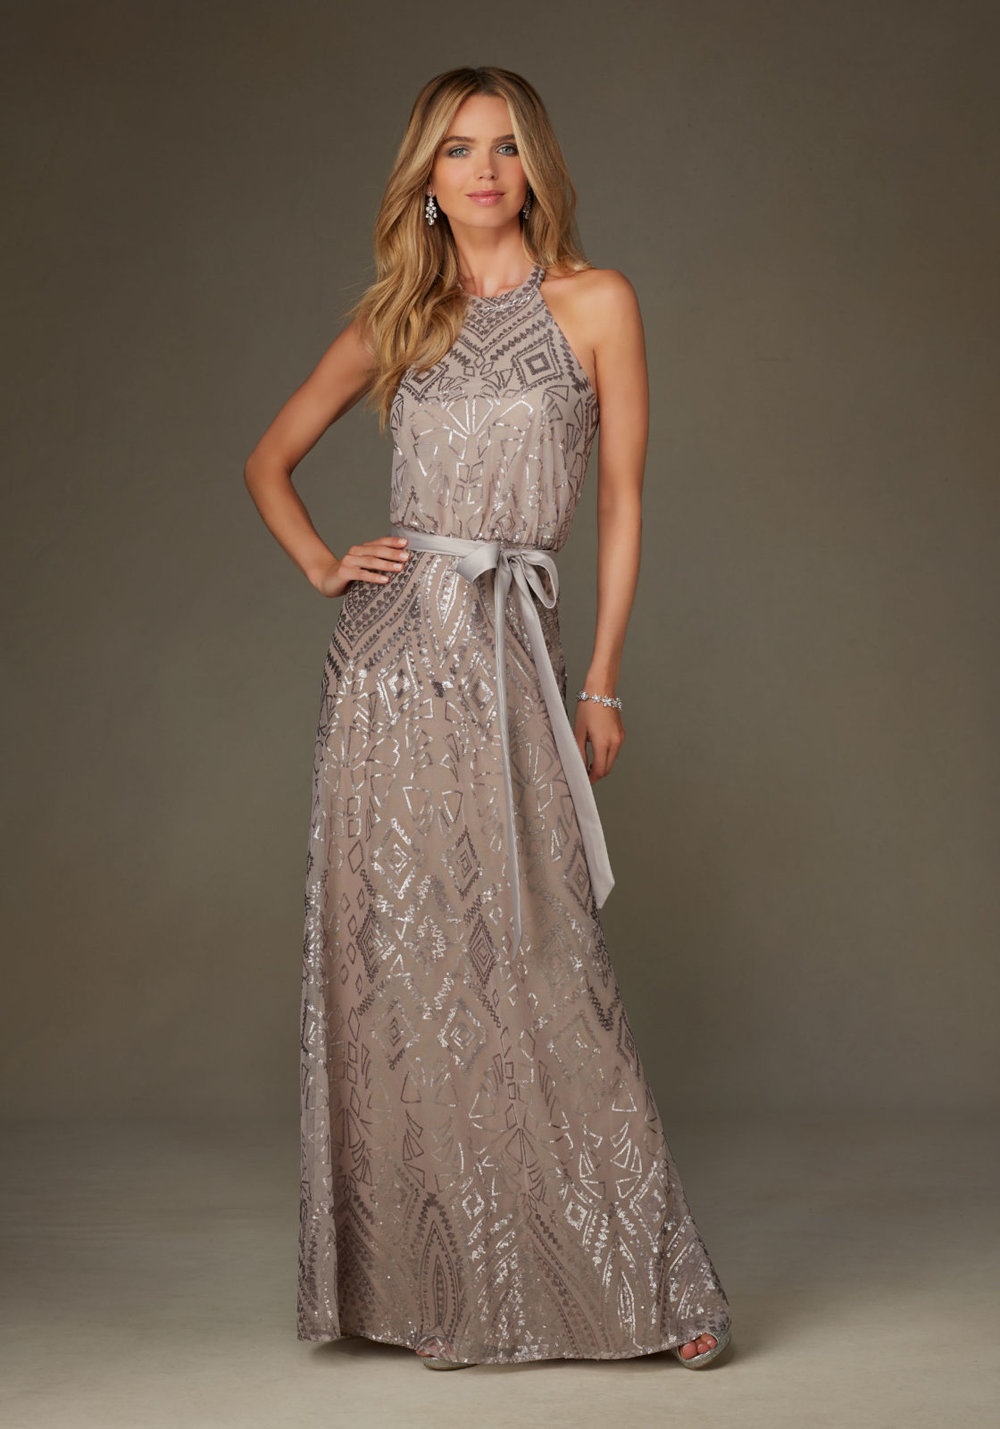 Patterned Sequins on Mesh Bridesmaid Dress